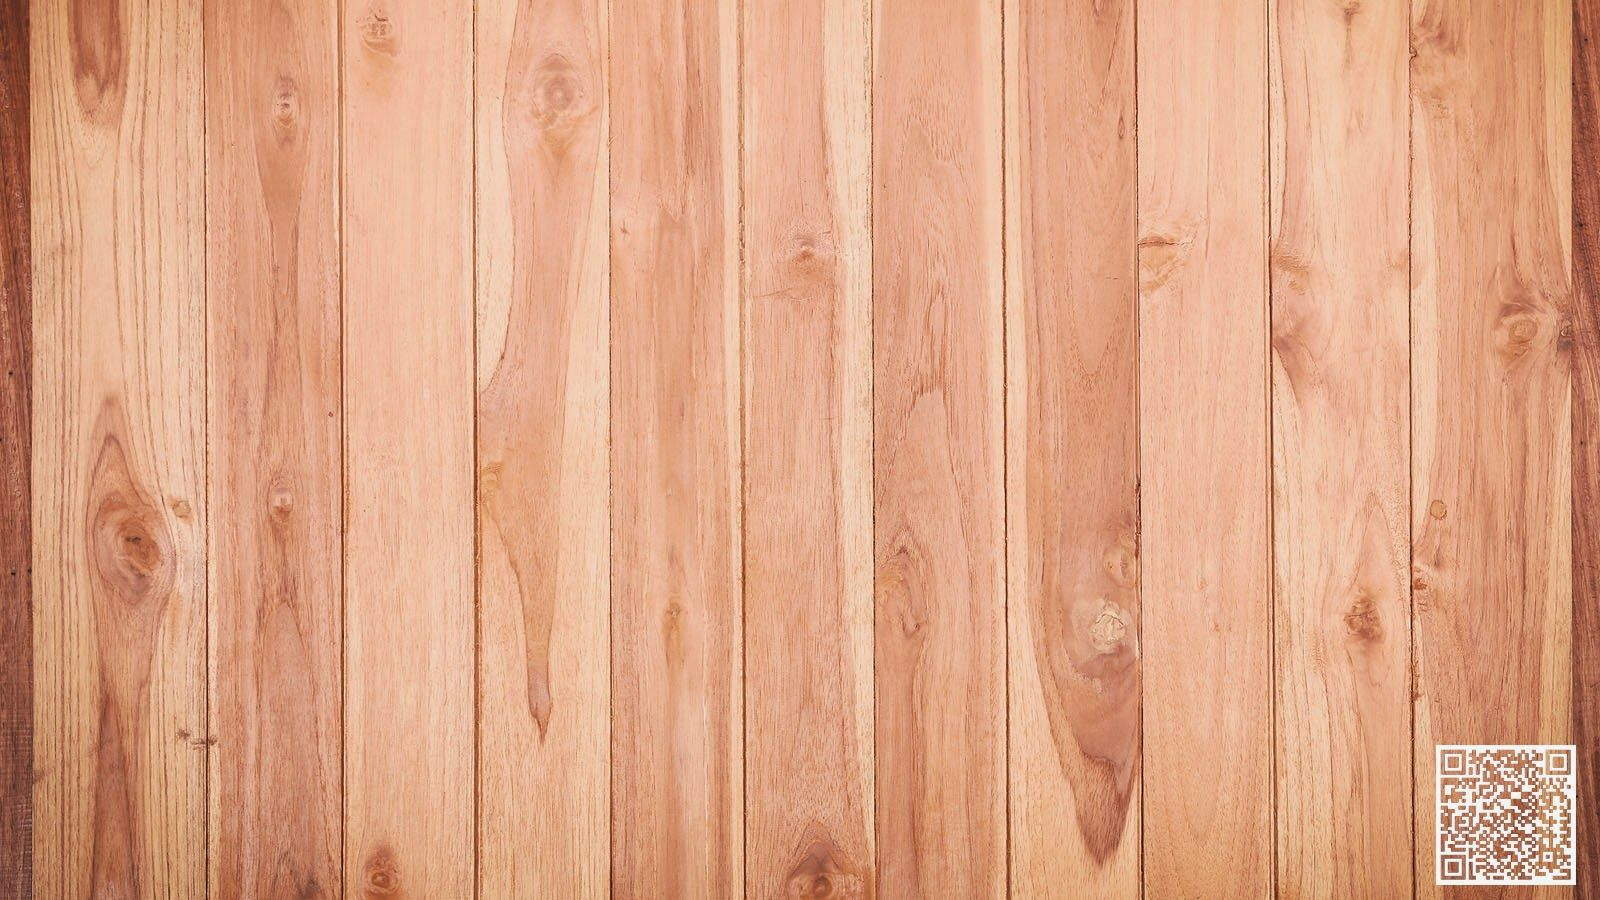 Hd Wood Wallpapersbackgrounds For Free Download Wood Background Wood Grain Wallpaper Minimal Wallpaper